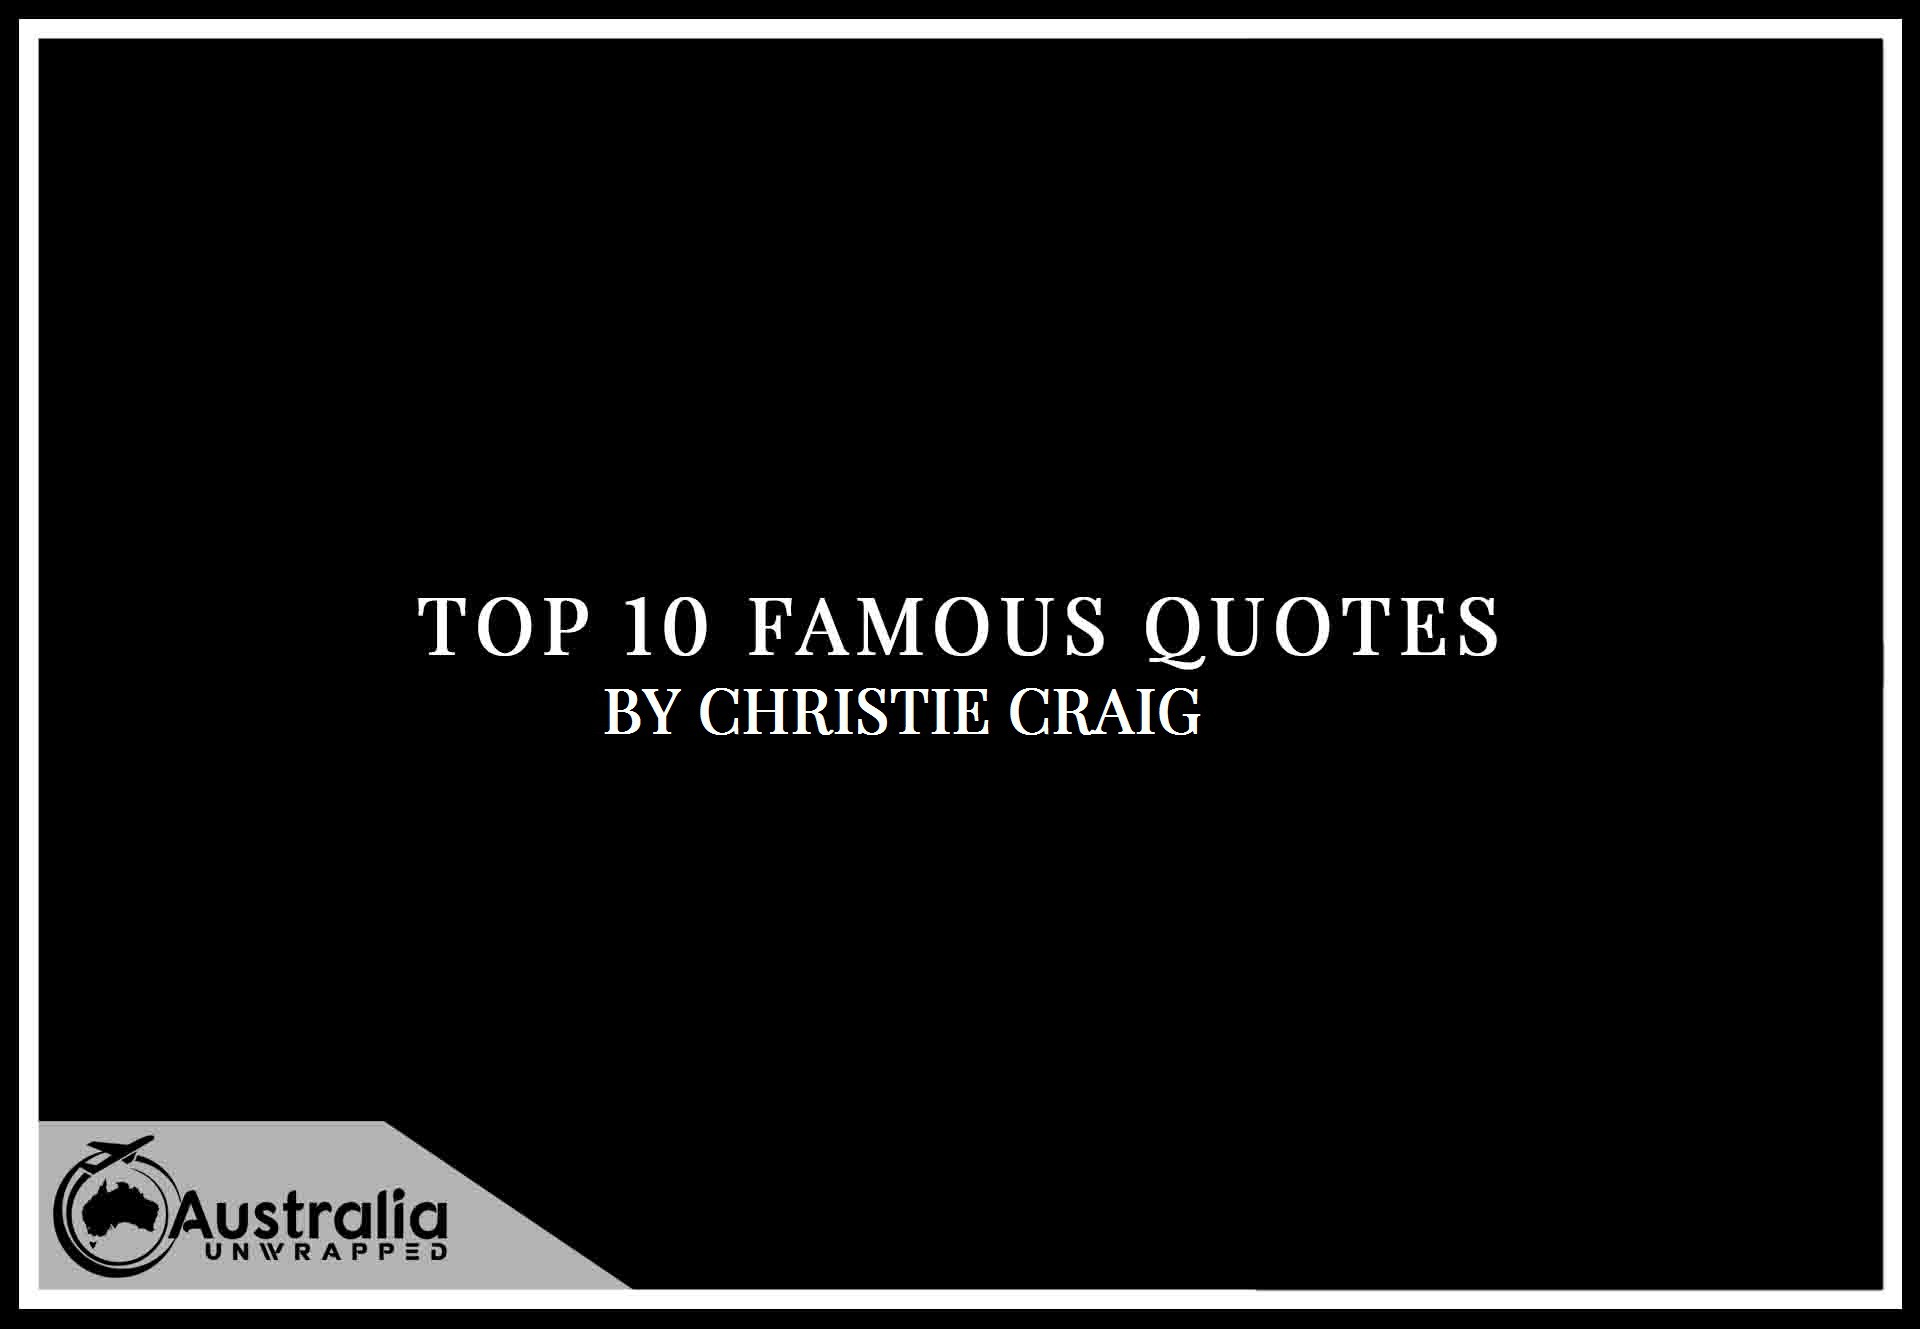 Christie Craig's Top 10 Popular and Famous Quotes